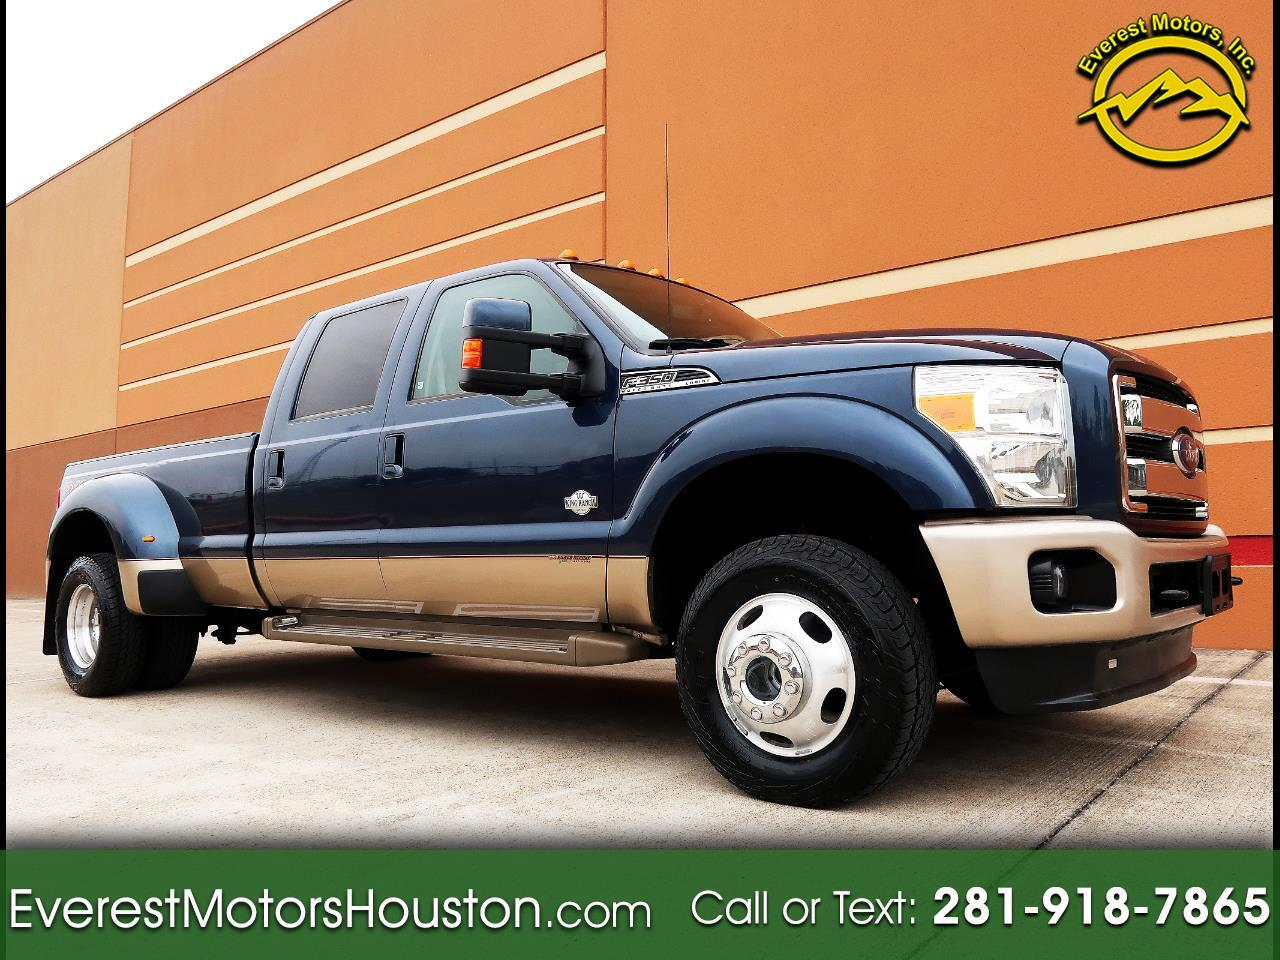 2013 Ford Super Duty F-350 DRW 4WD Crew Cab Dually Long Bed King Ranch